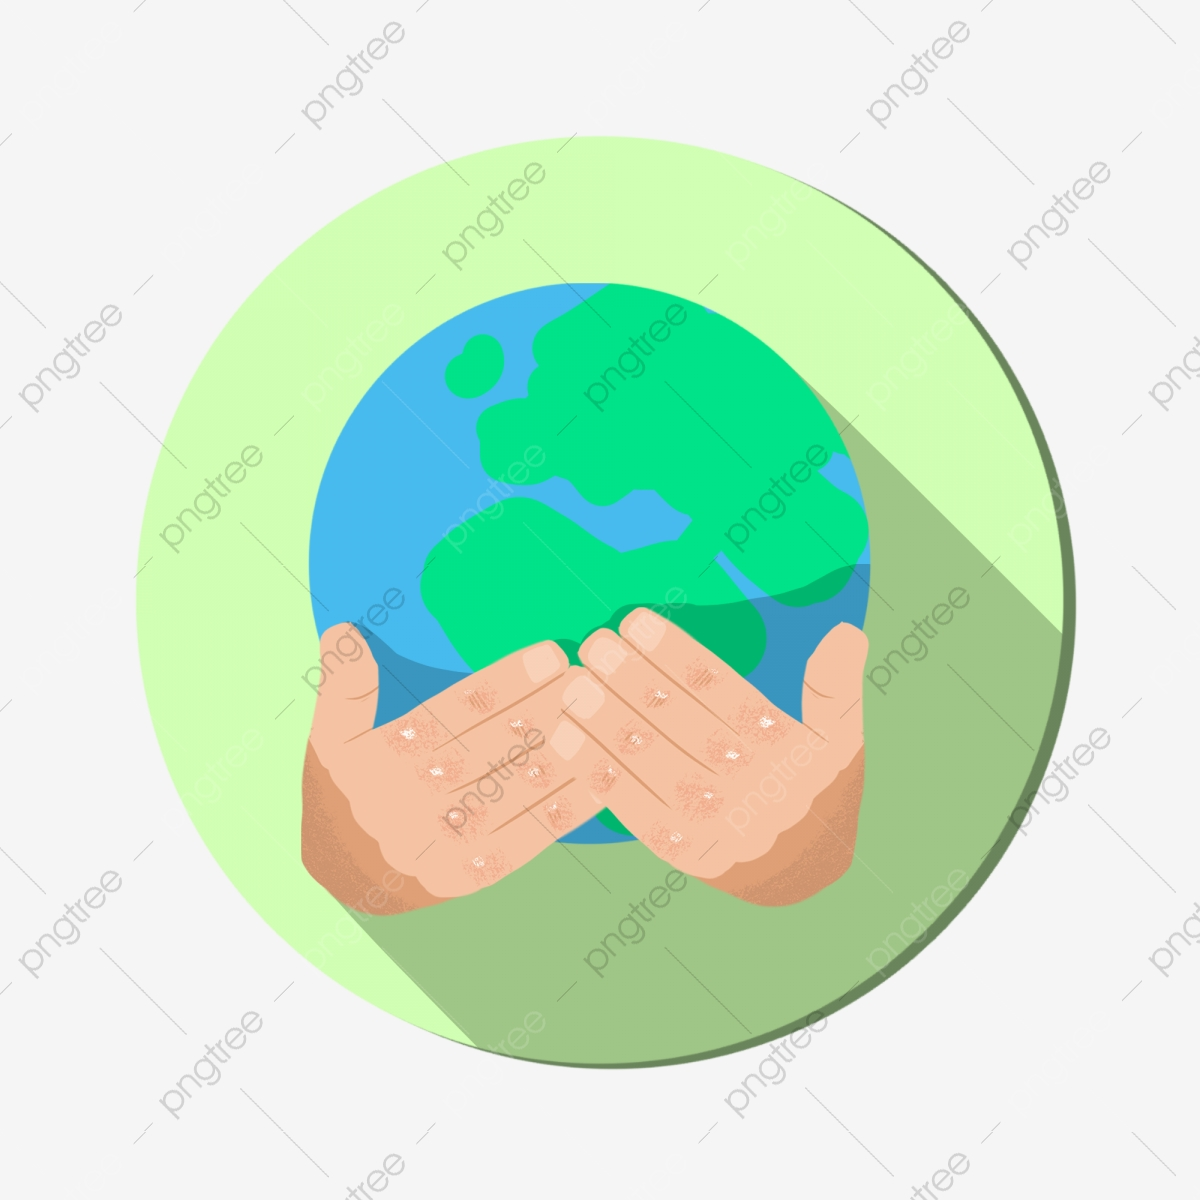 Hands Holding The Earth Hands Care Decorative Style Png Transparent Clipart Image And Psd File For Free Download Download 121 hands holding earth free vectors. https pngtree com freepng hands holding the earth 4529955 html